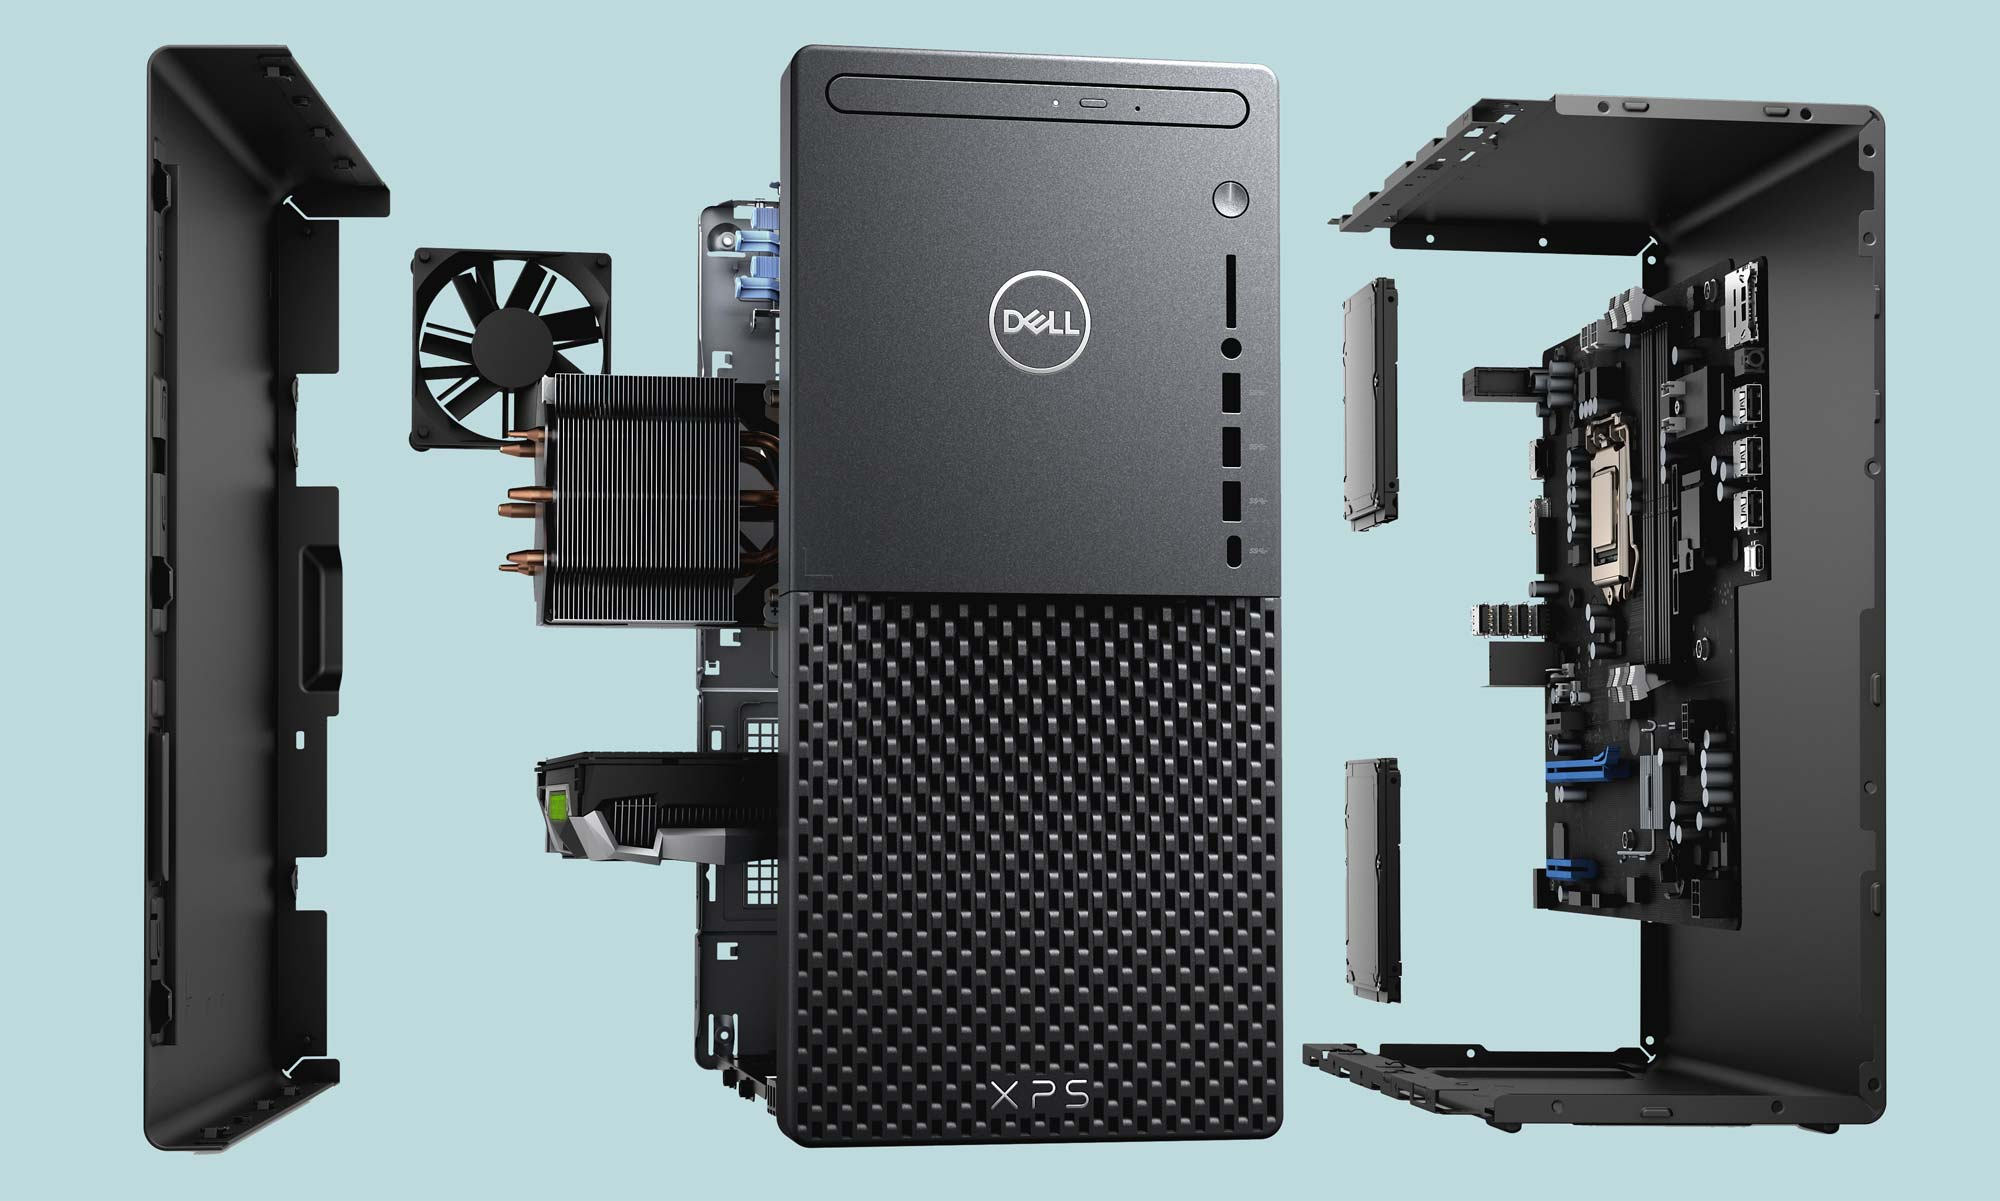 Dell XPS 8940 review